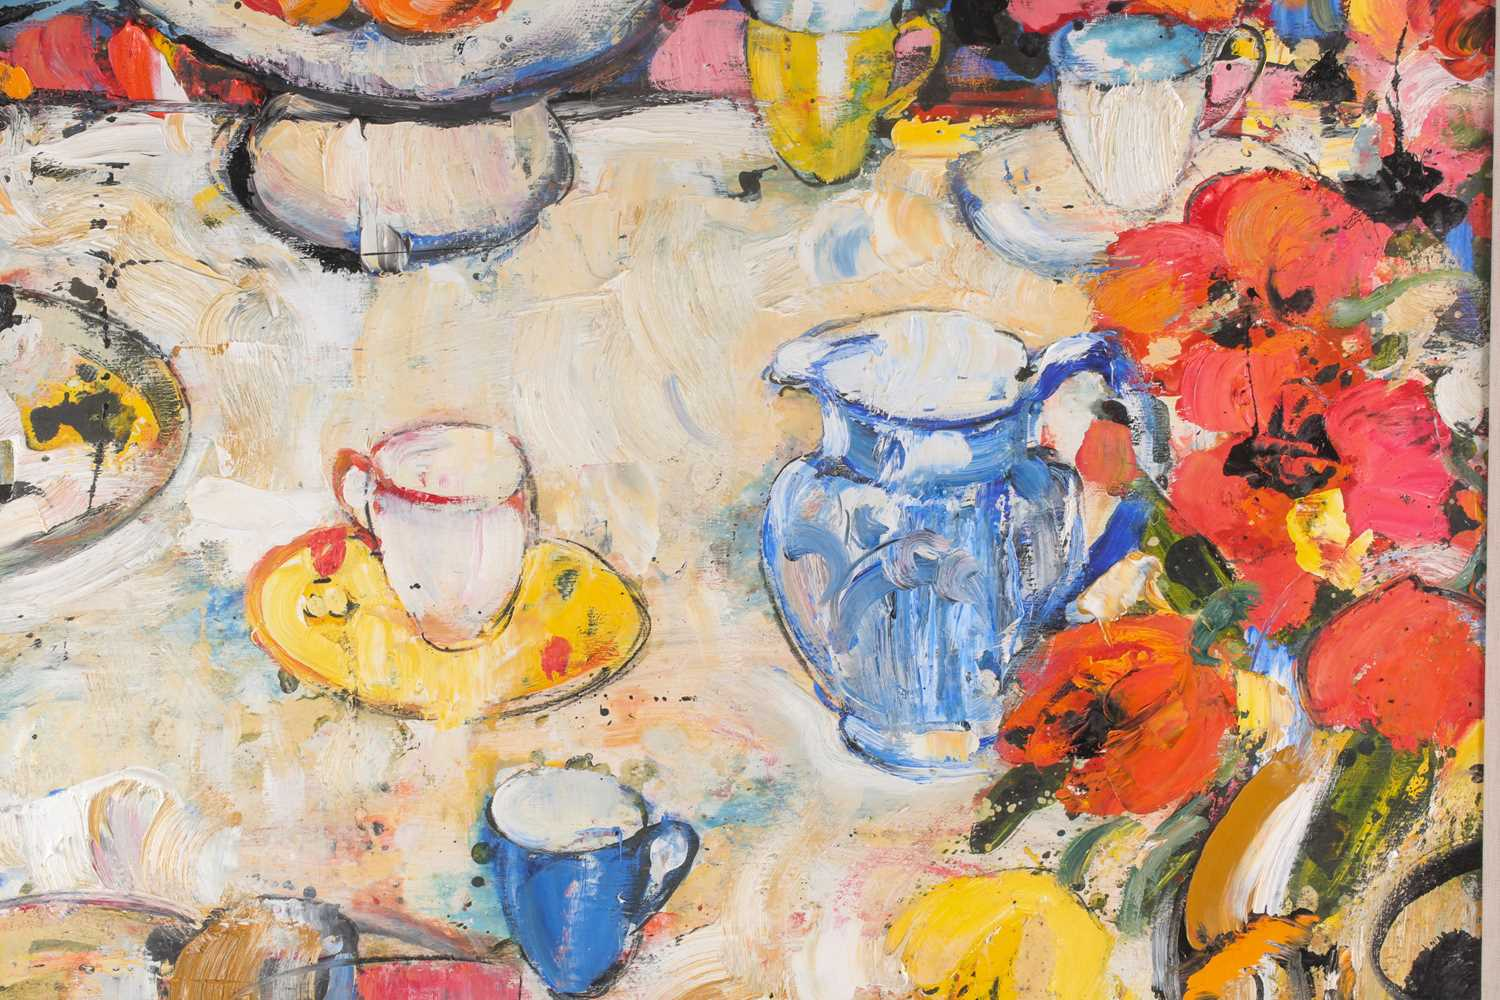 Peter Mclaren, (B. 1964), Still life with blue cup and blue jug, oil on board, signed and titled - Image 5 of 5